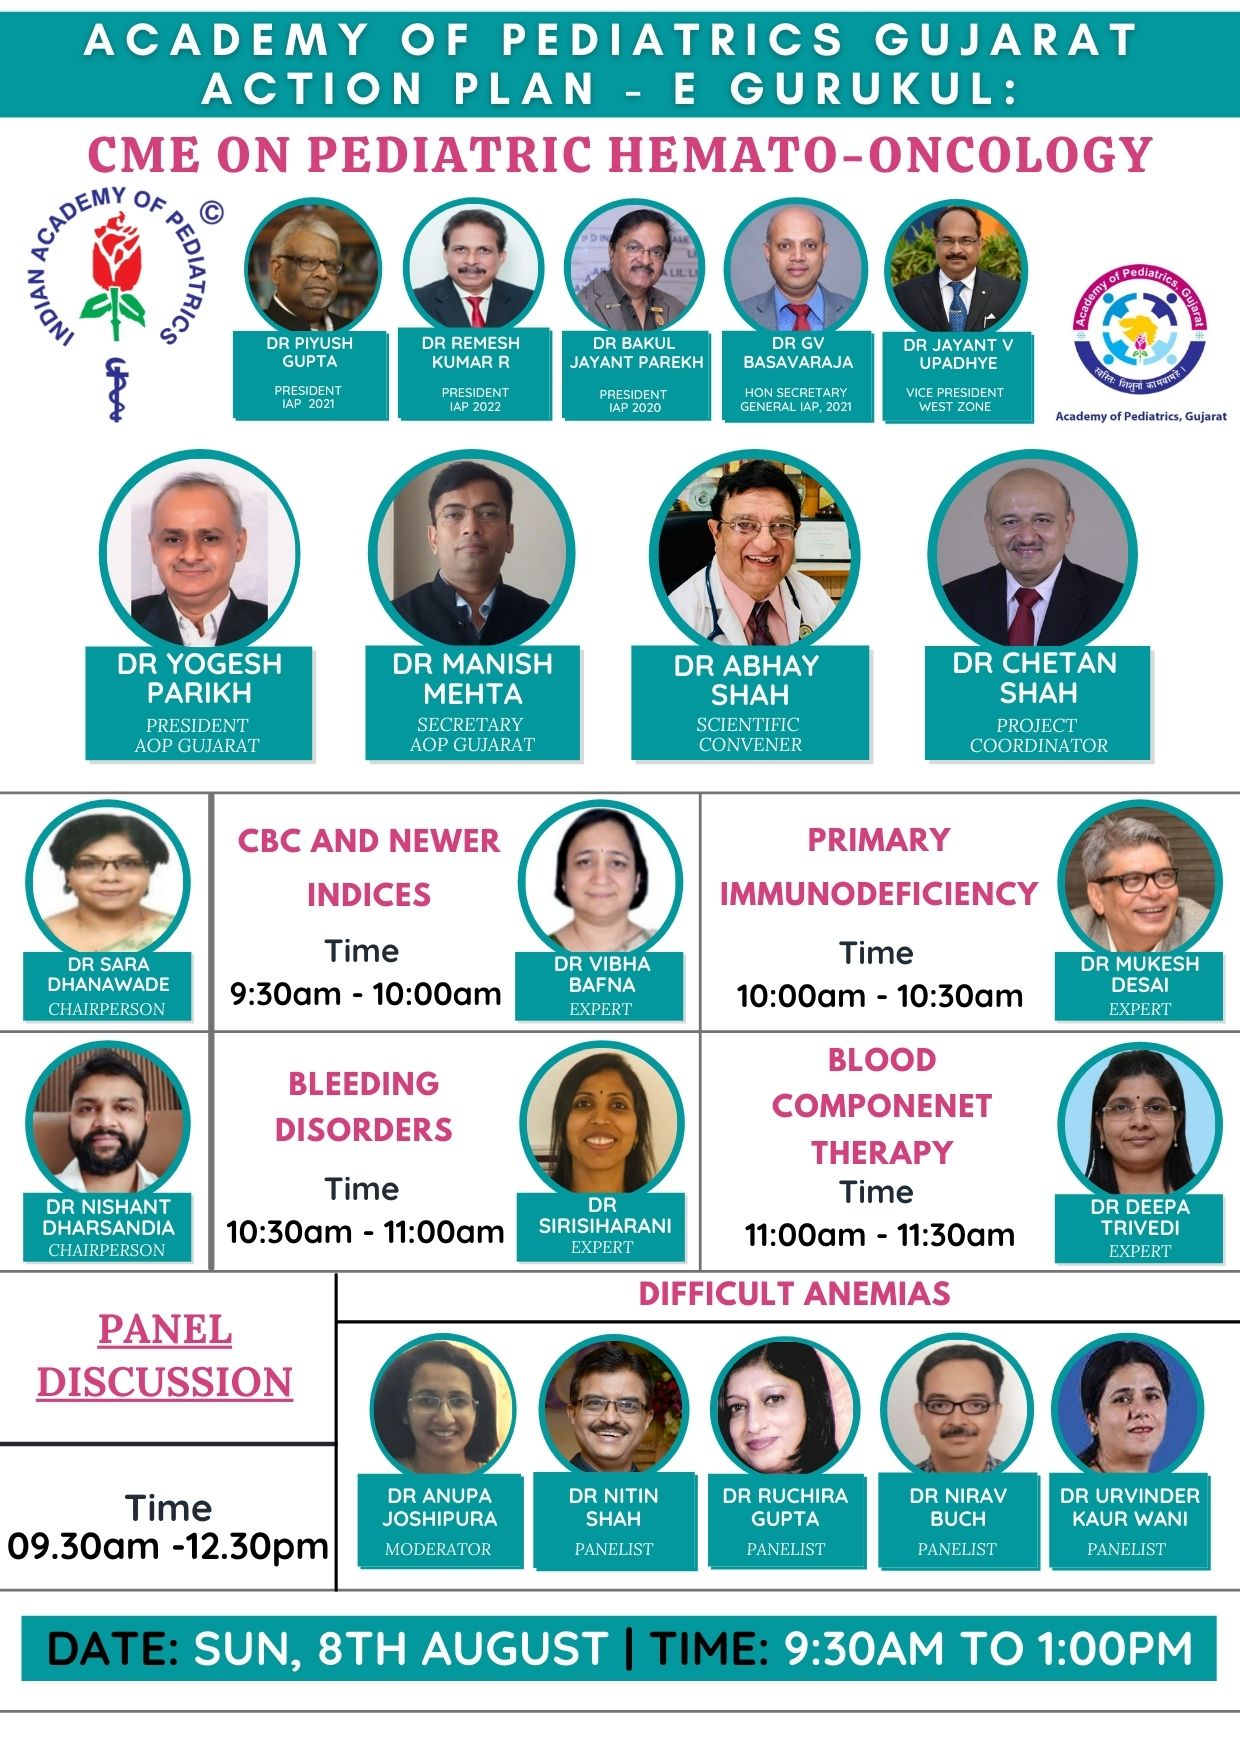 ,8th August,AOP Gujarat Action Plan CME on Pediatric Hematooncology